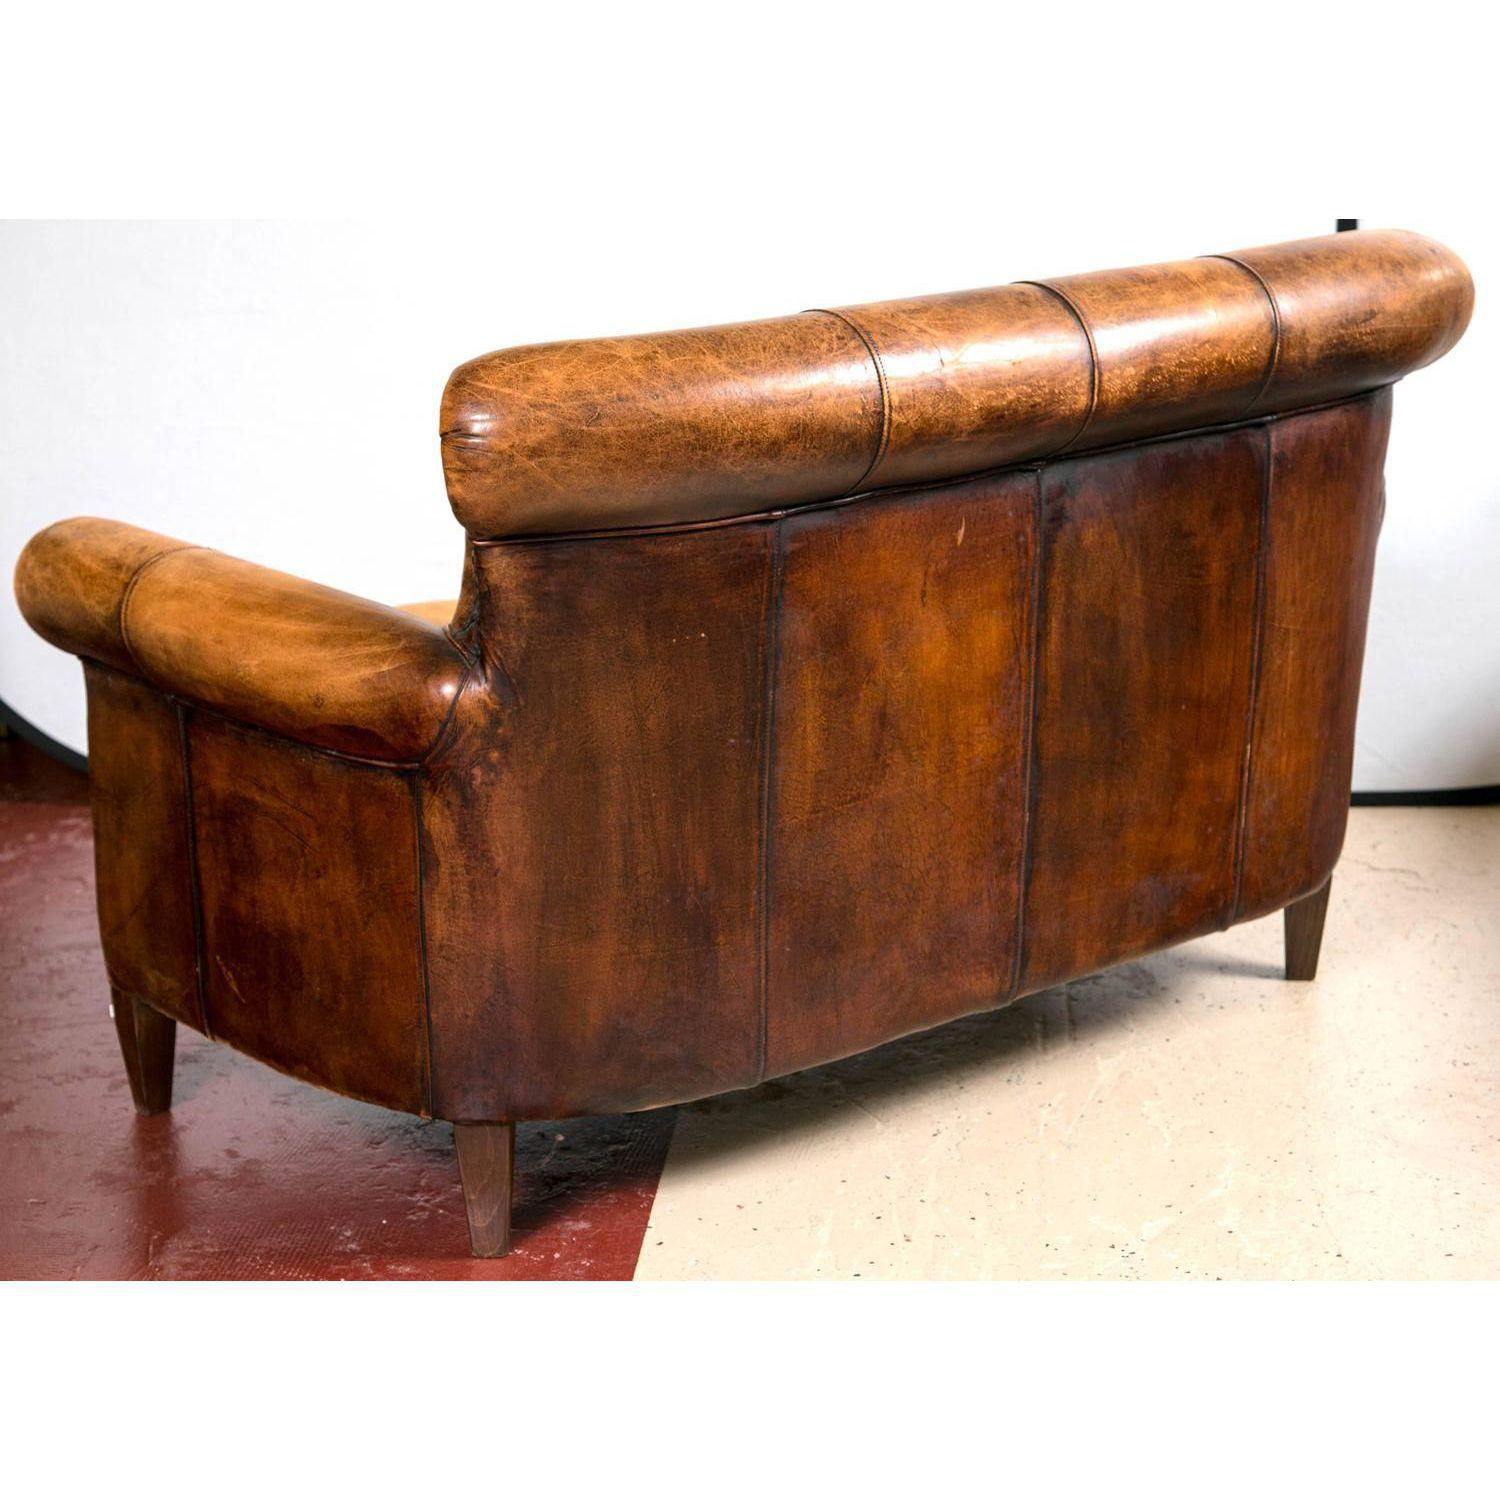 Vintage French Distressed Art Deco Leather Sofa Leather Sofas  ~ Kensington Leather Sofa